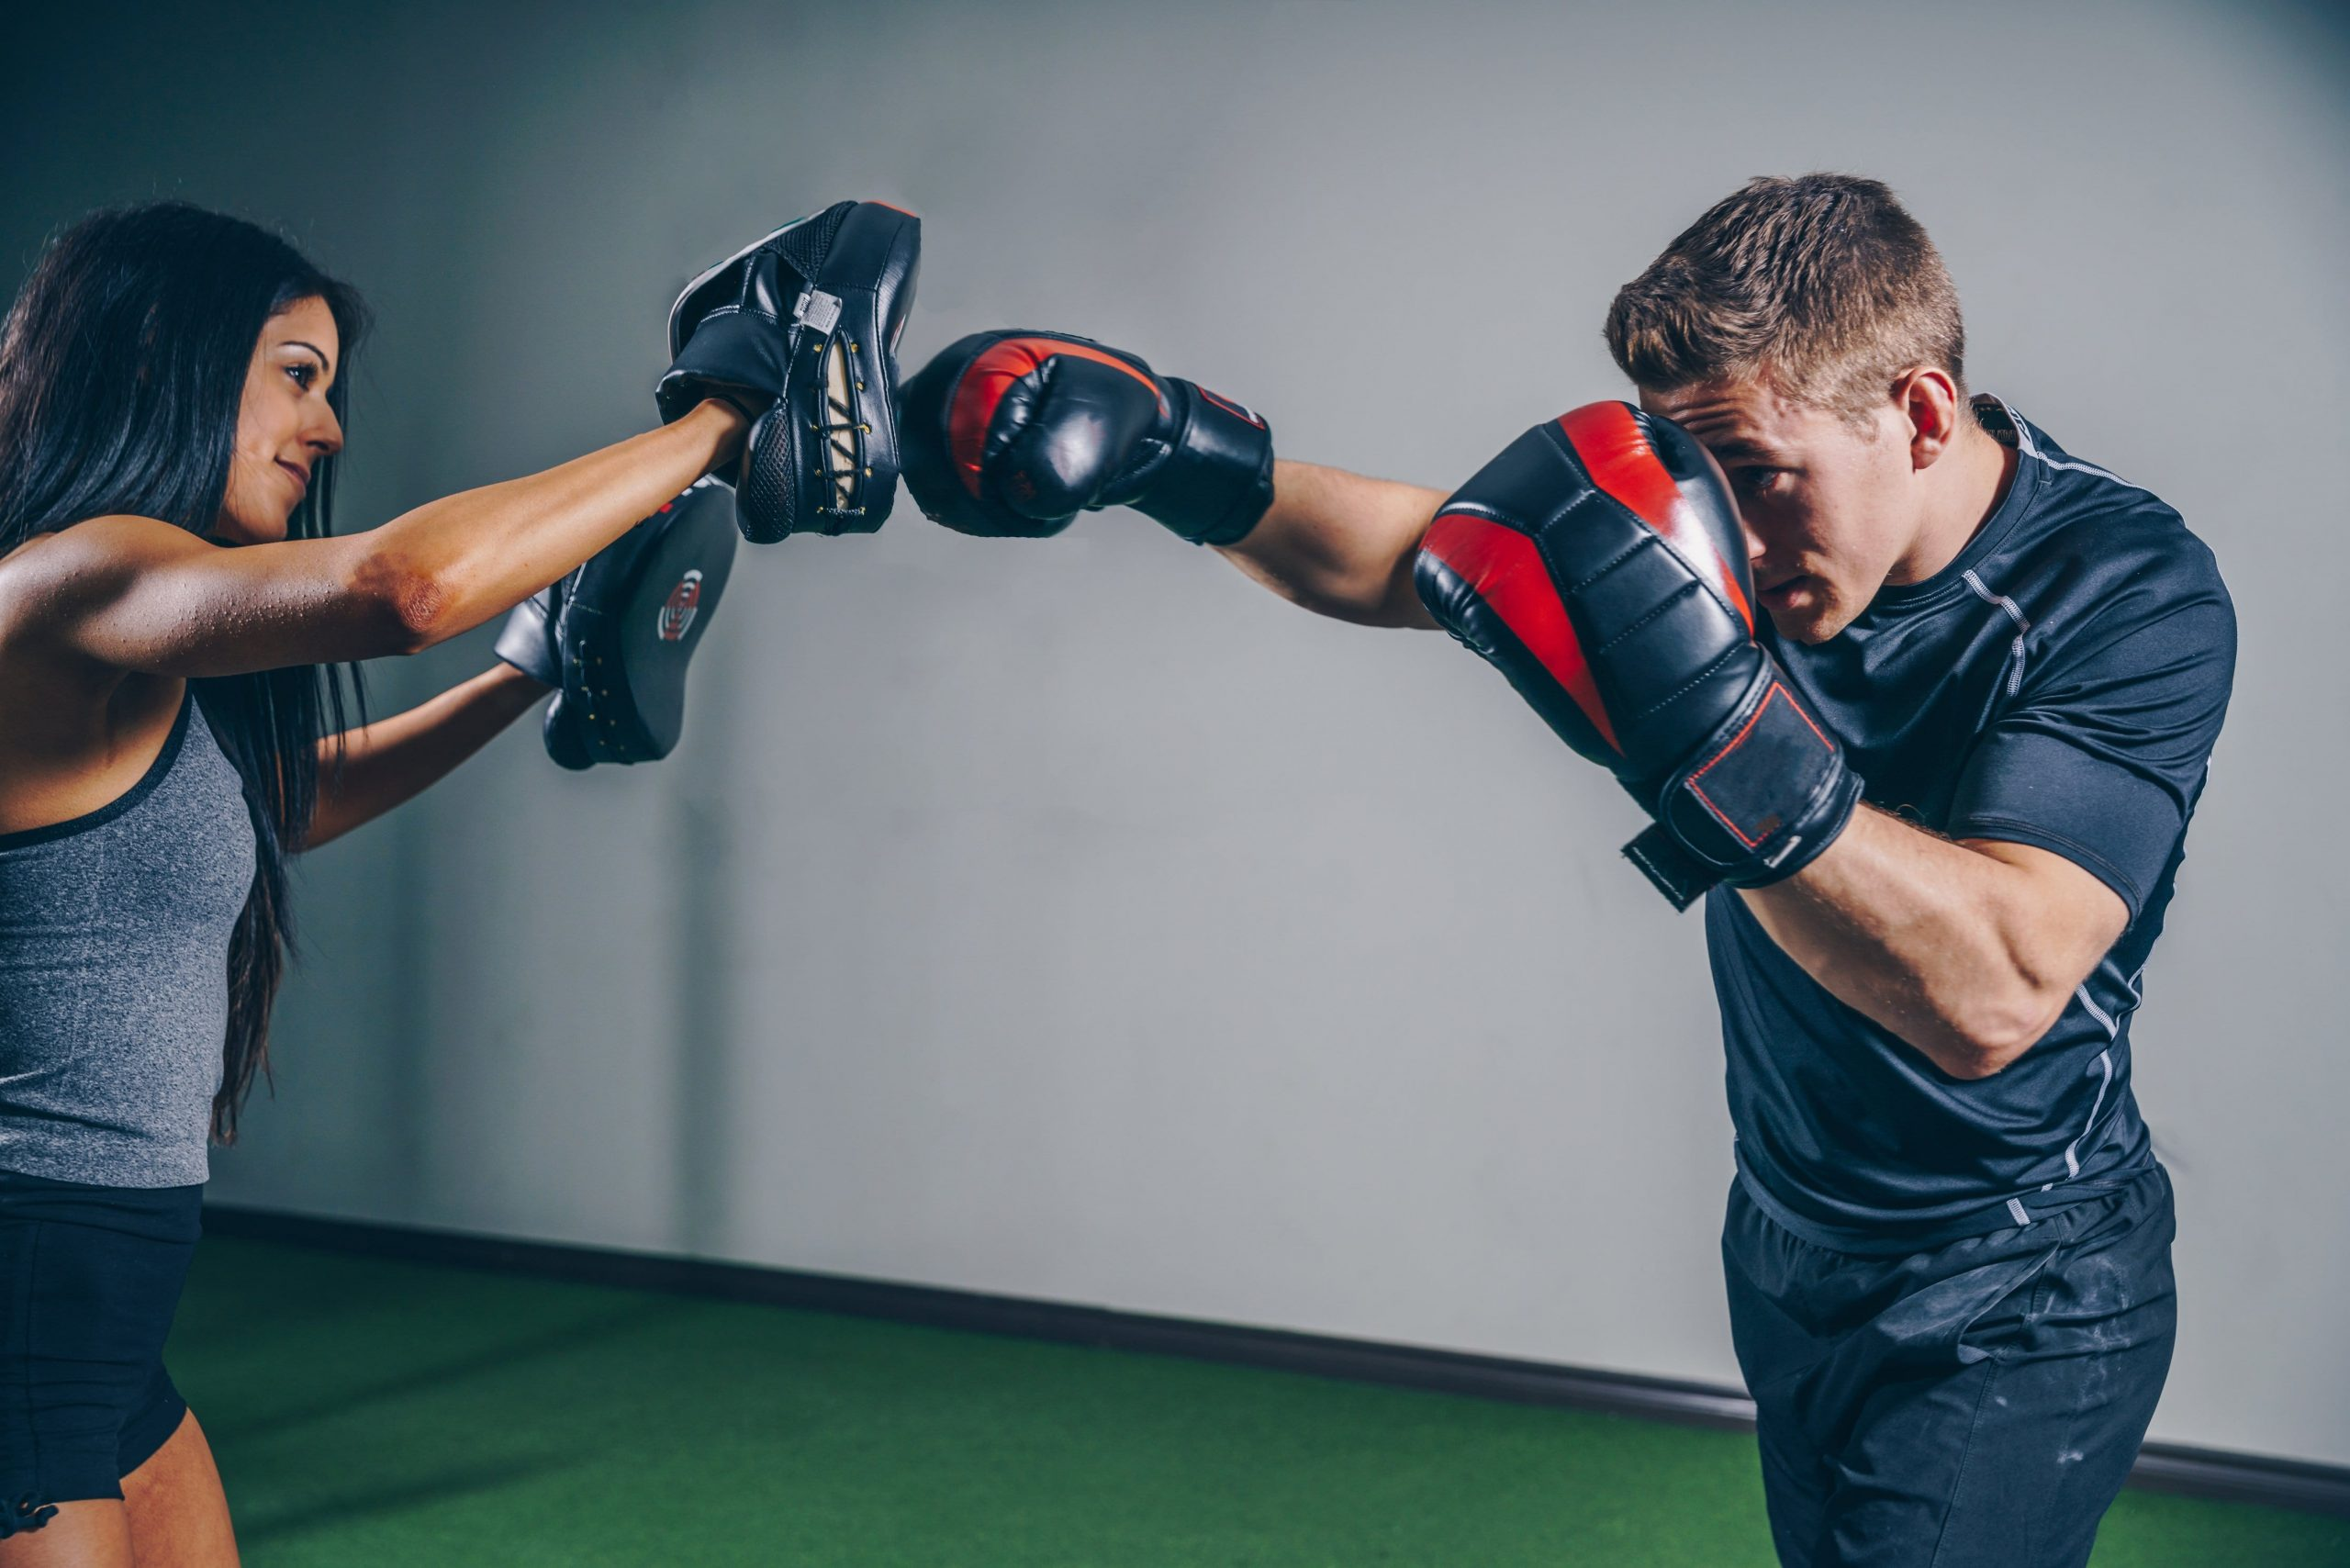 Essentials for Increasing Your Boxing Skills